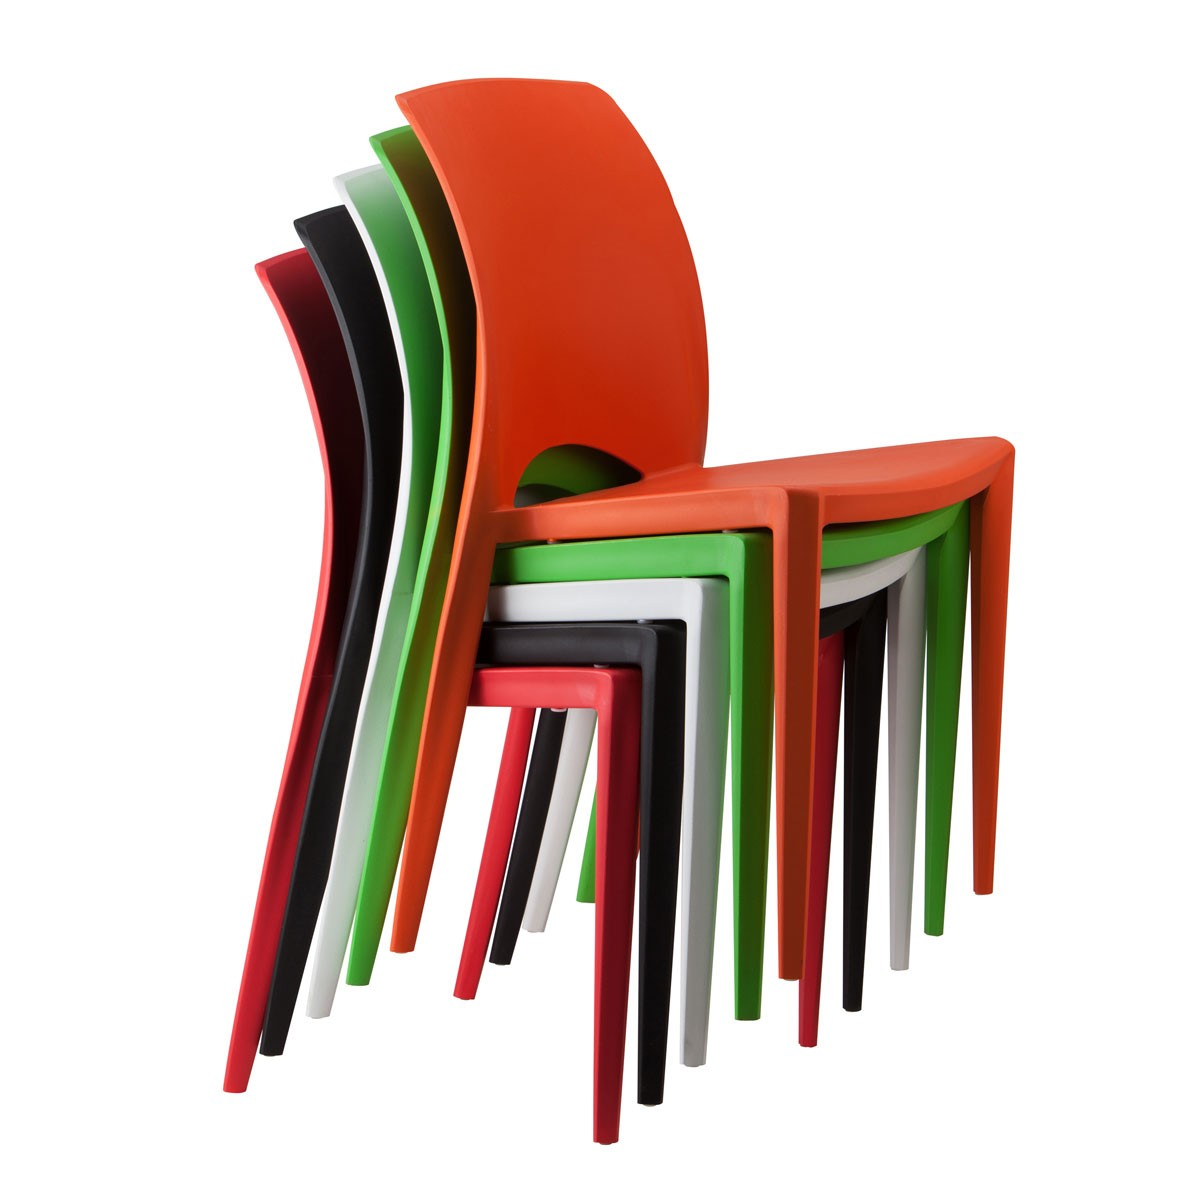 Molded Plastic Chair in Green - (YMG-9908-4)